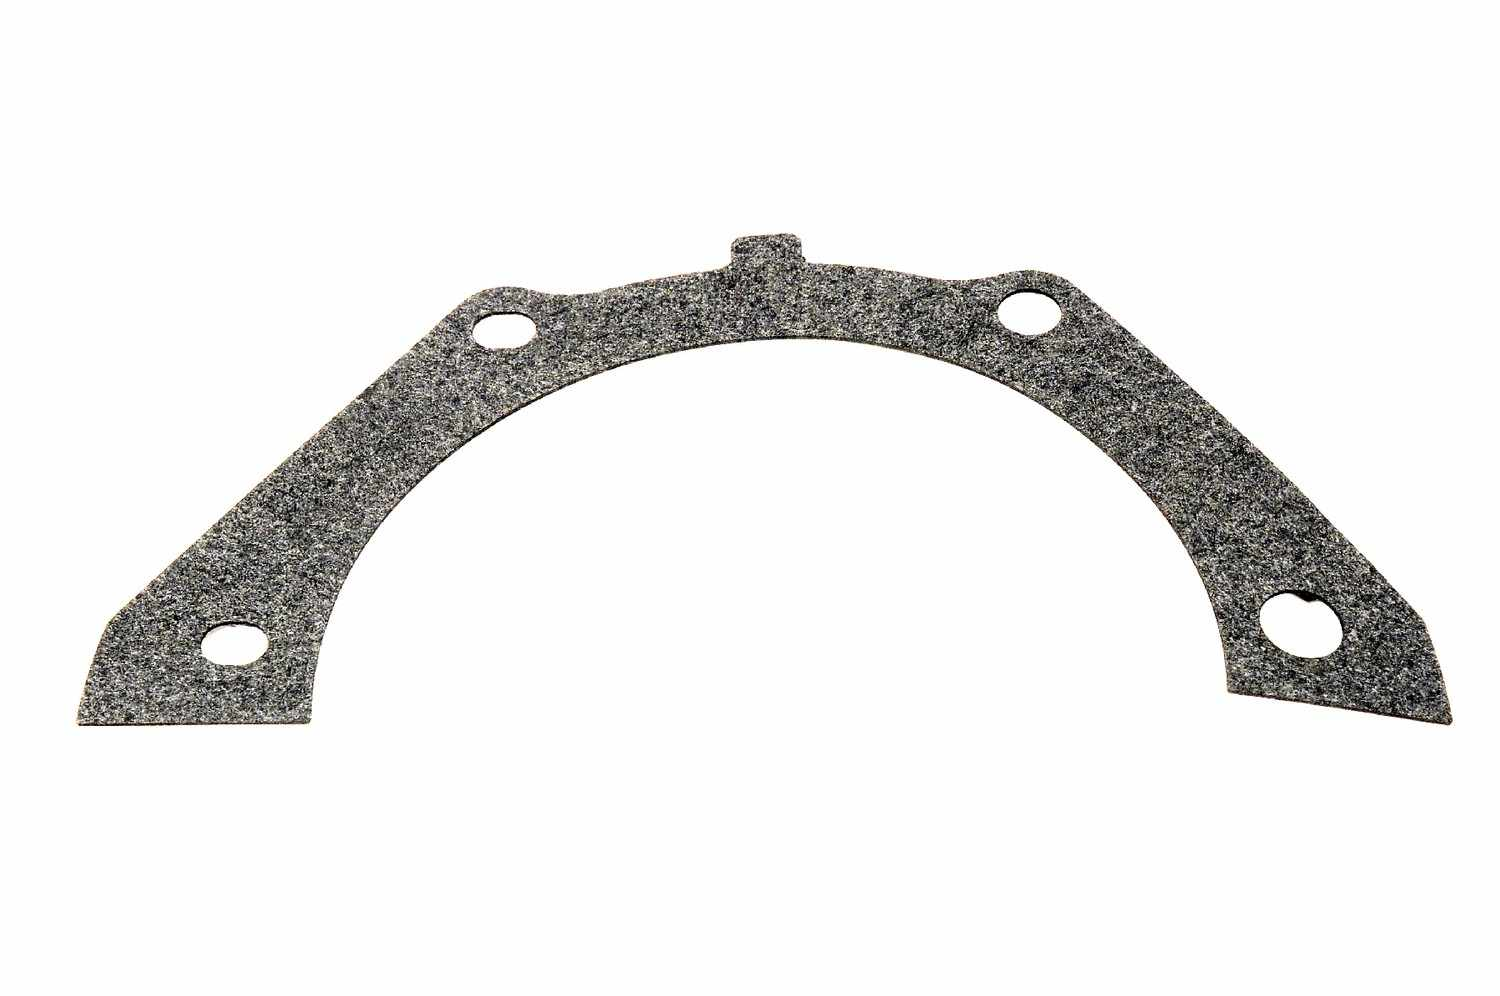 ACDELCO GM ORIGINAL EQUIPMENT - Engine Crankshaft Seal Retainer Gasket - DCB 12555771